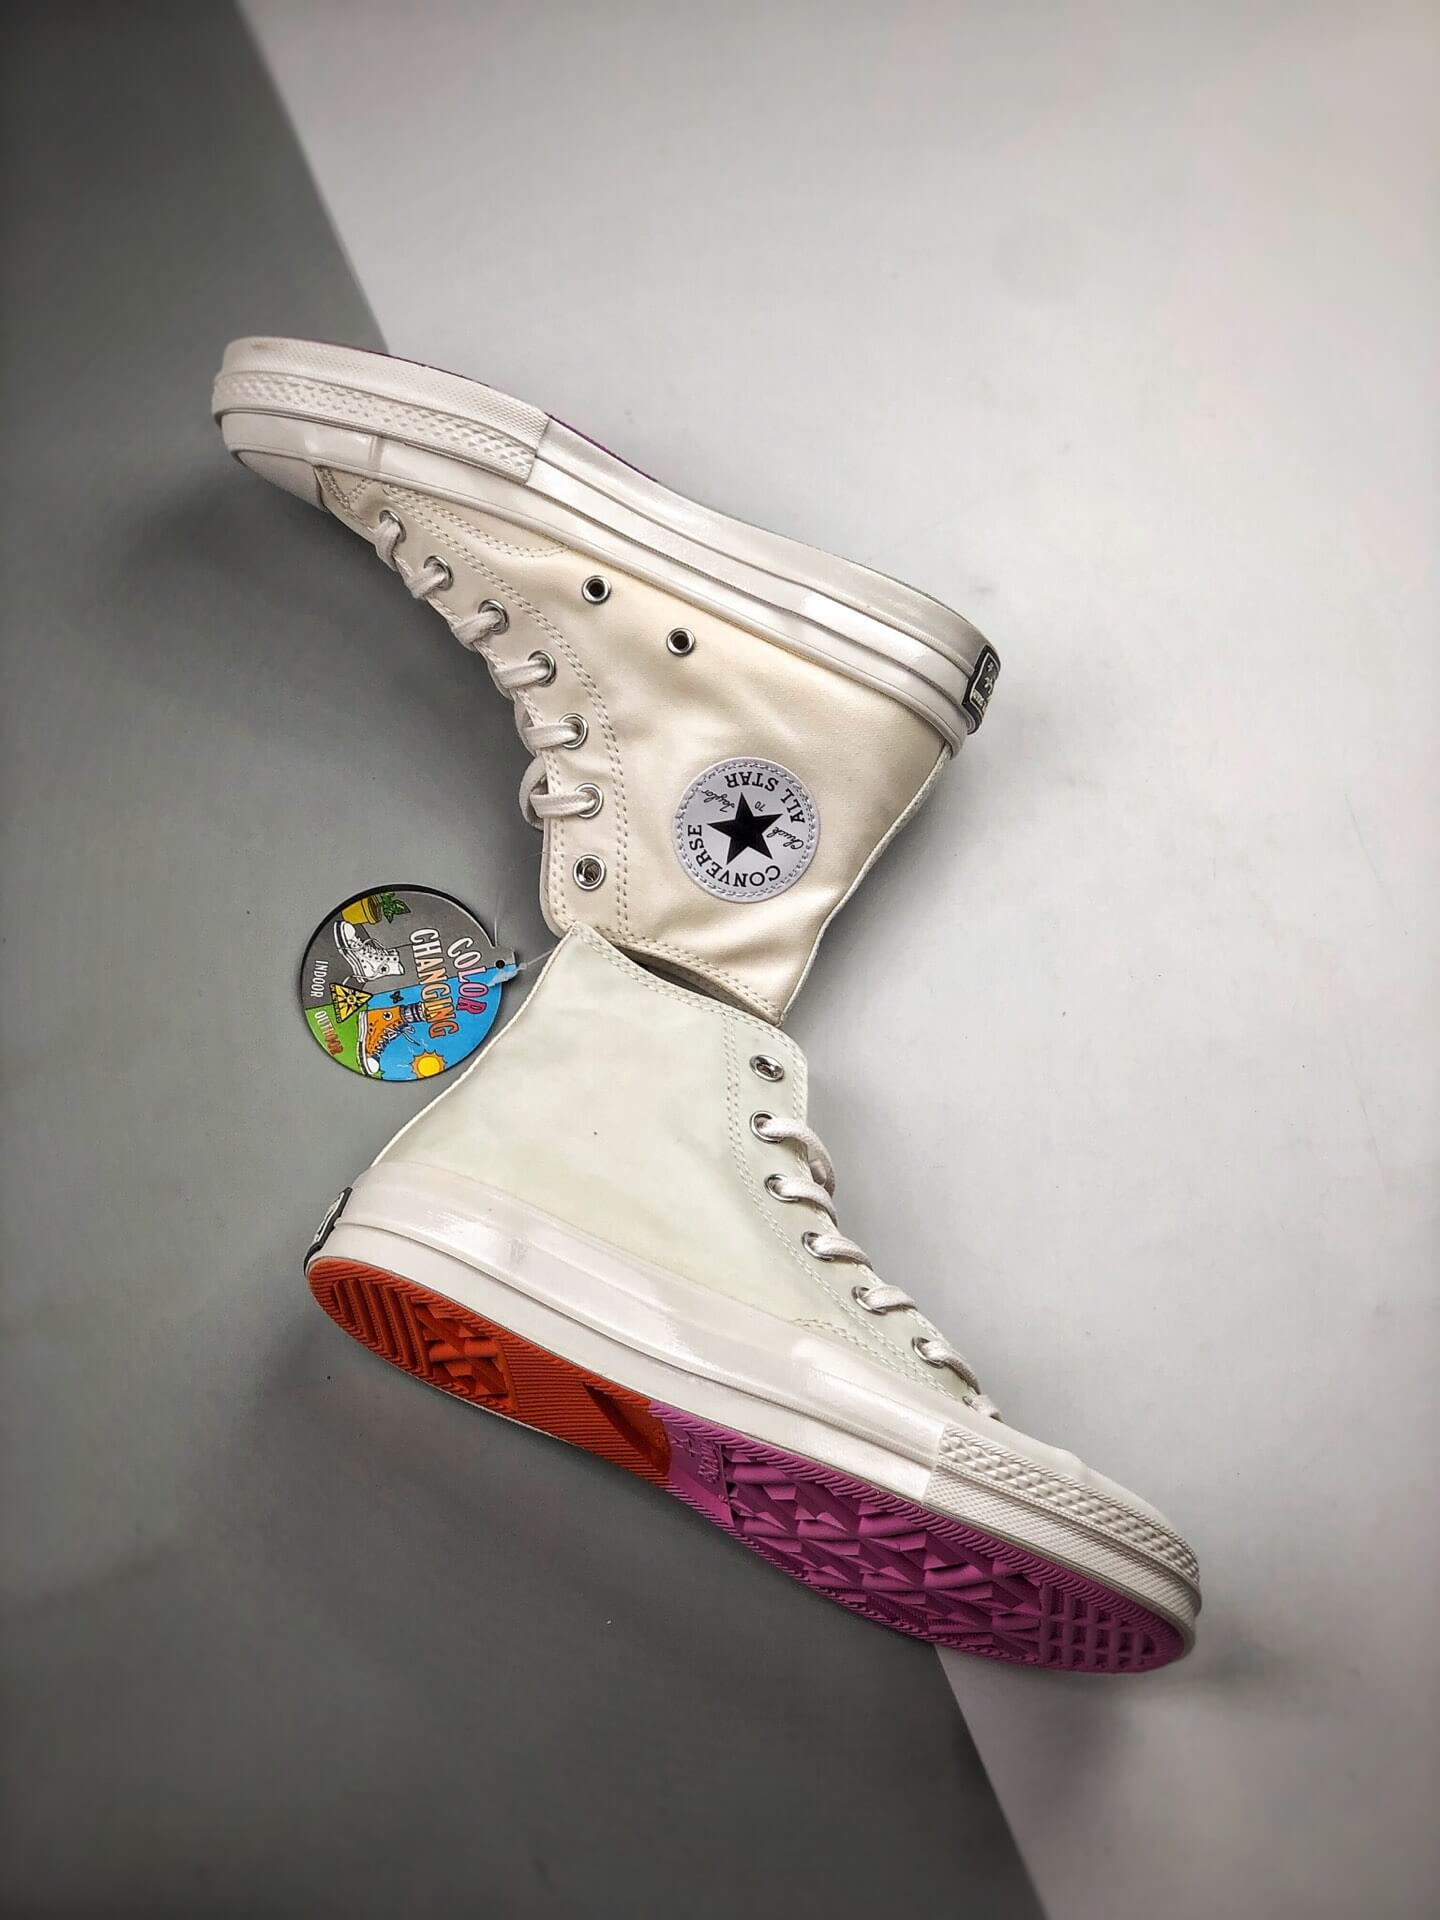 The Converse Chinatown Market x Chuck 70 High UV Lifestyle RepShoes 08